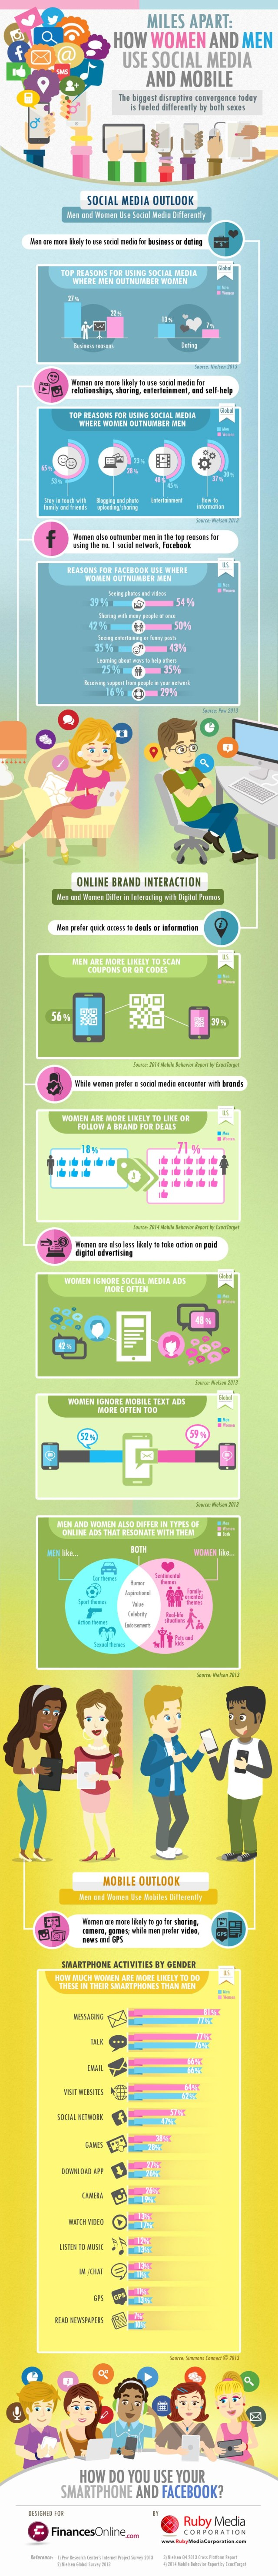 How women and men use Social Media and mobile - Fonte: FinanceOnline.com